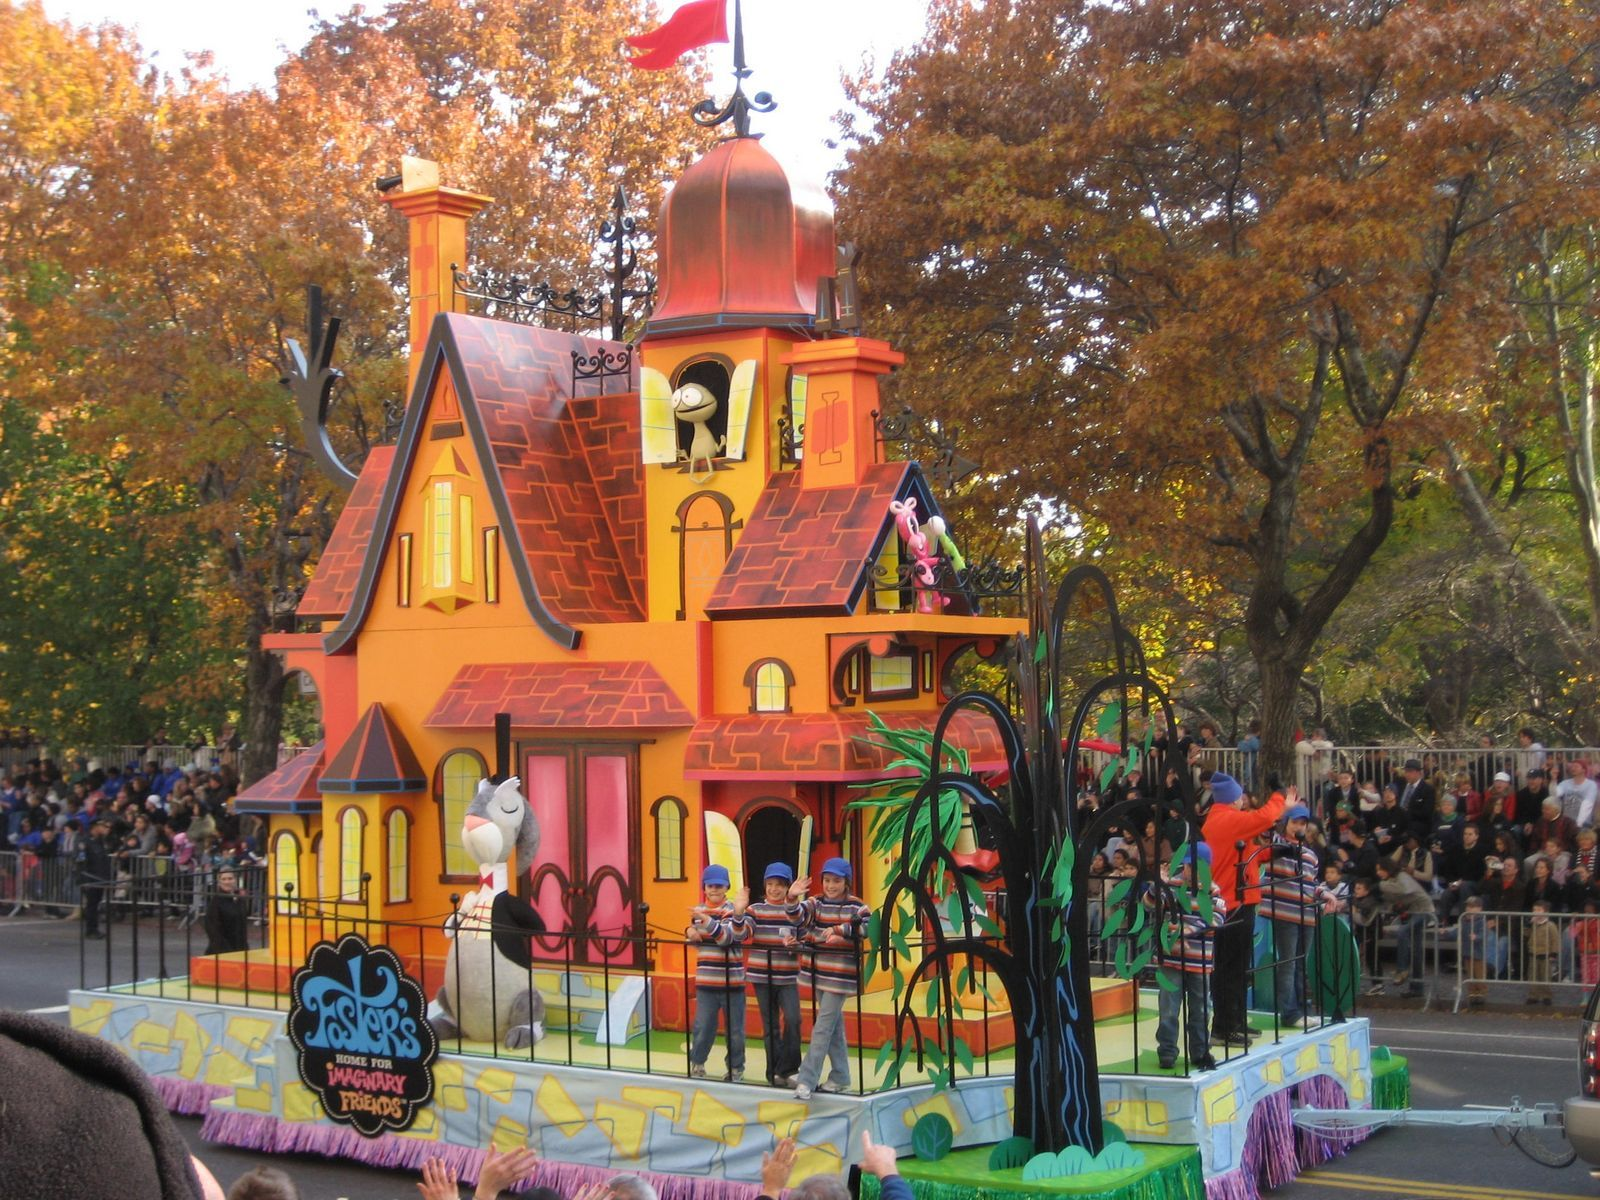 Macy S Thanksgiving Day Parade Float Thanksgiving Day Parade Macys Thanksgiving Parade Macy S Thanksgiving Day Parade